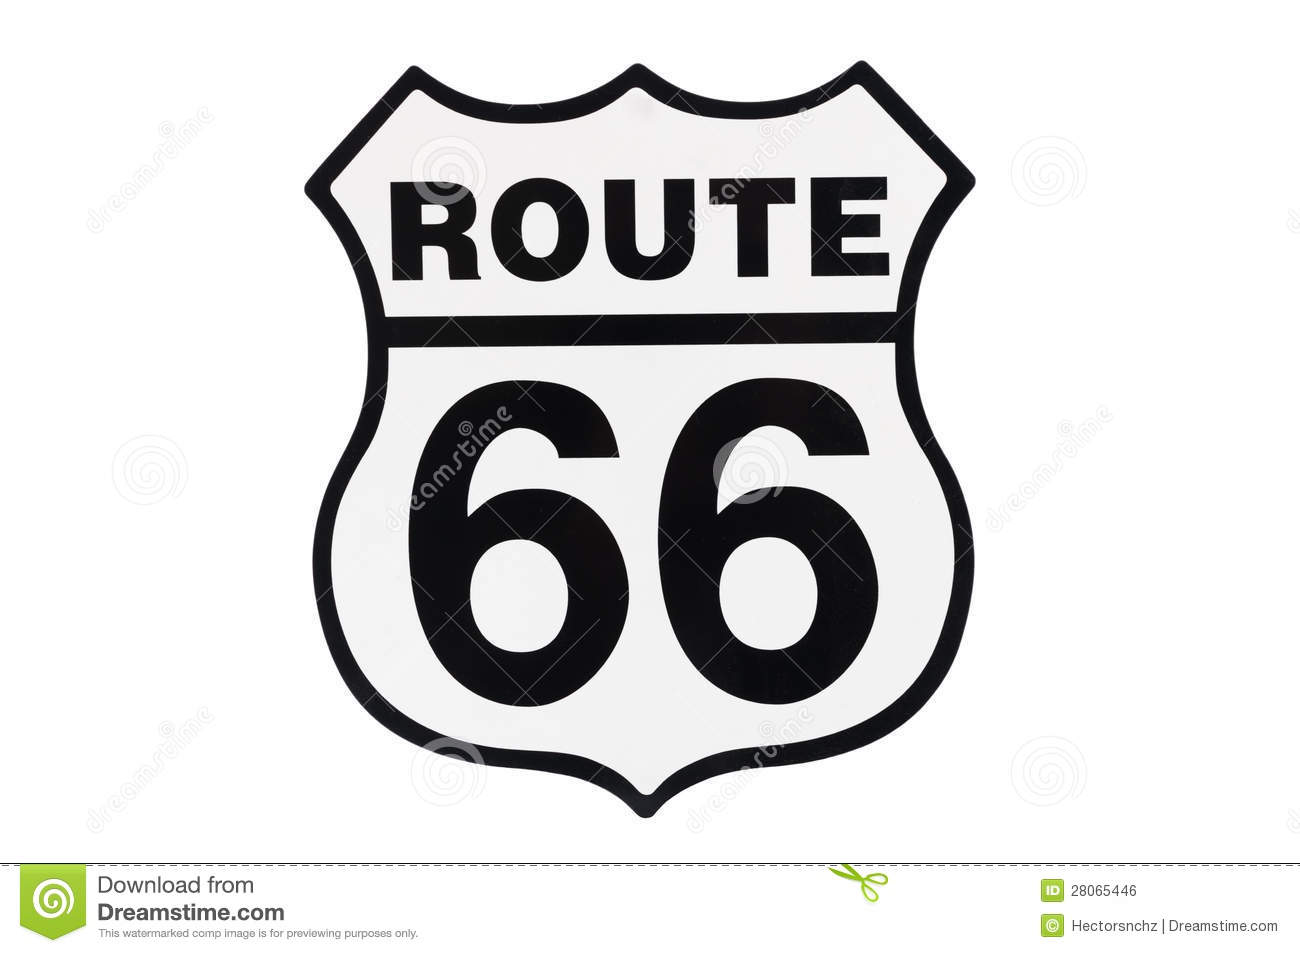 Highway Road Sign Route 66 Royalty Free Stock Image - Image: 28065446